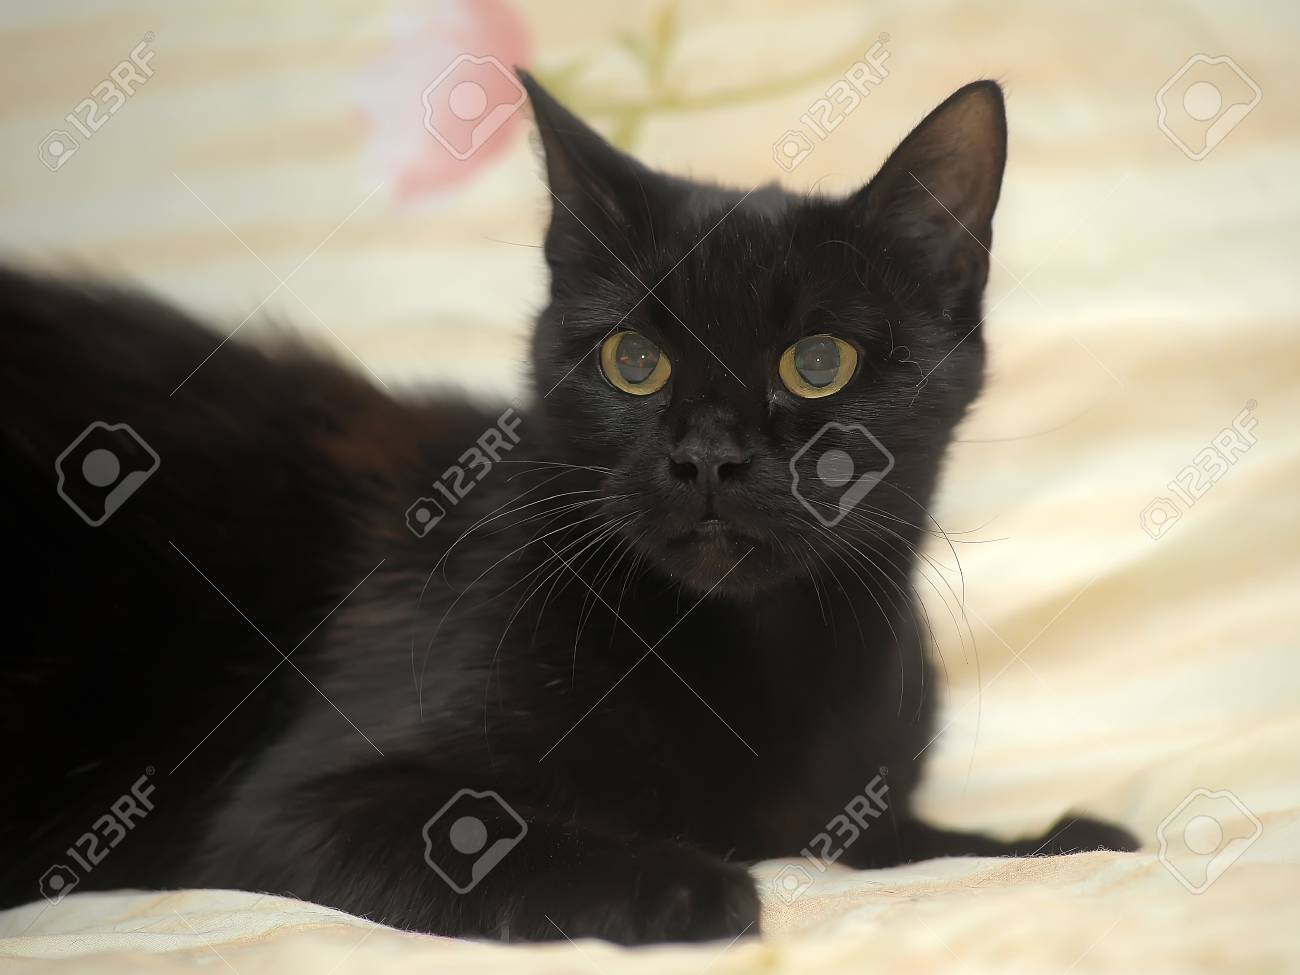 Black Cat On Yellow Background Stock Photo Picture And Royalty Free Image Image 35102050